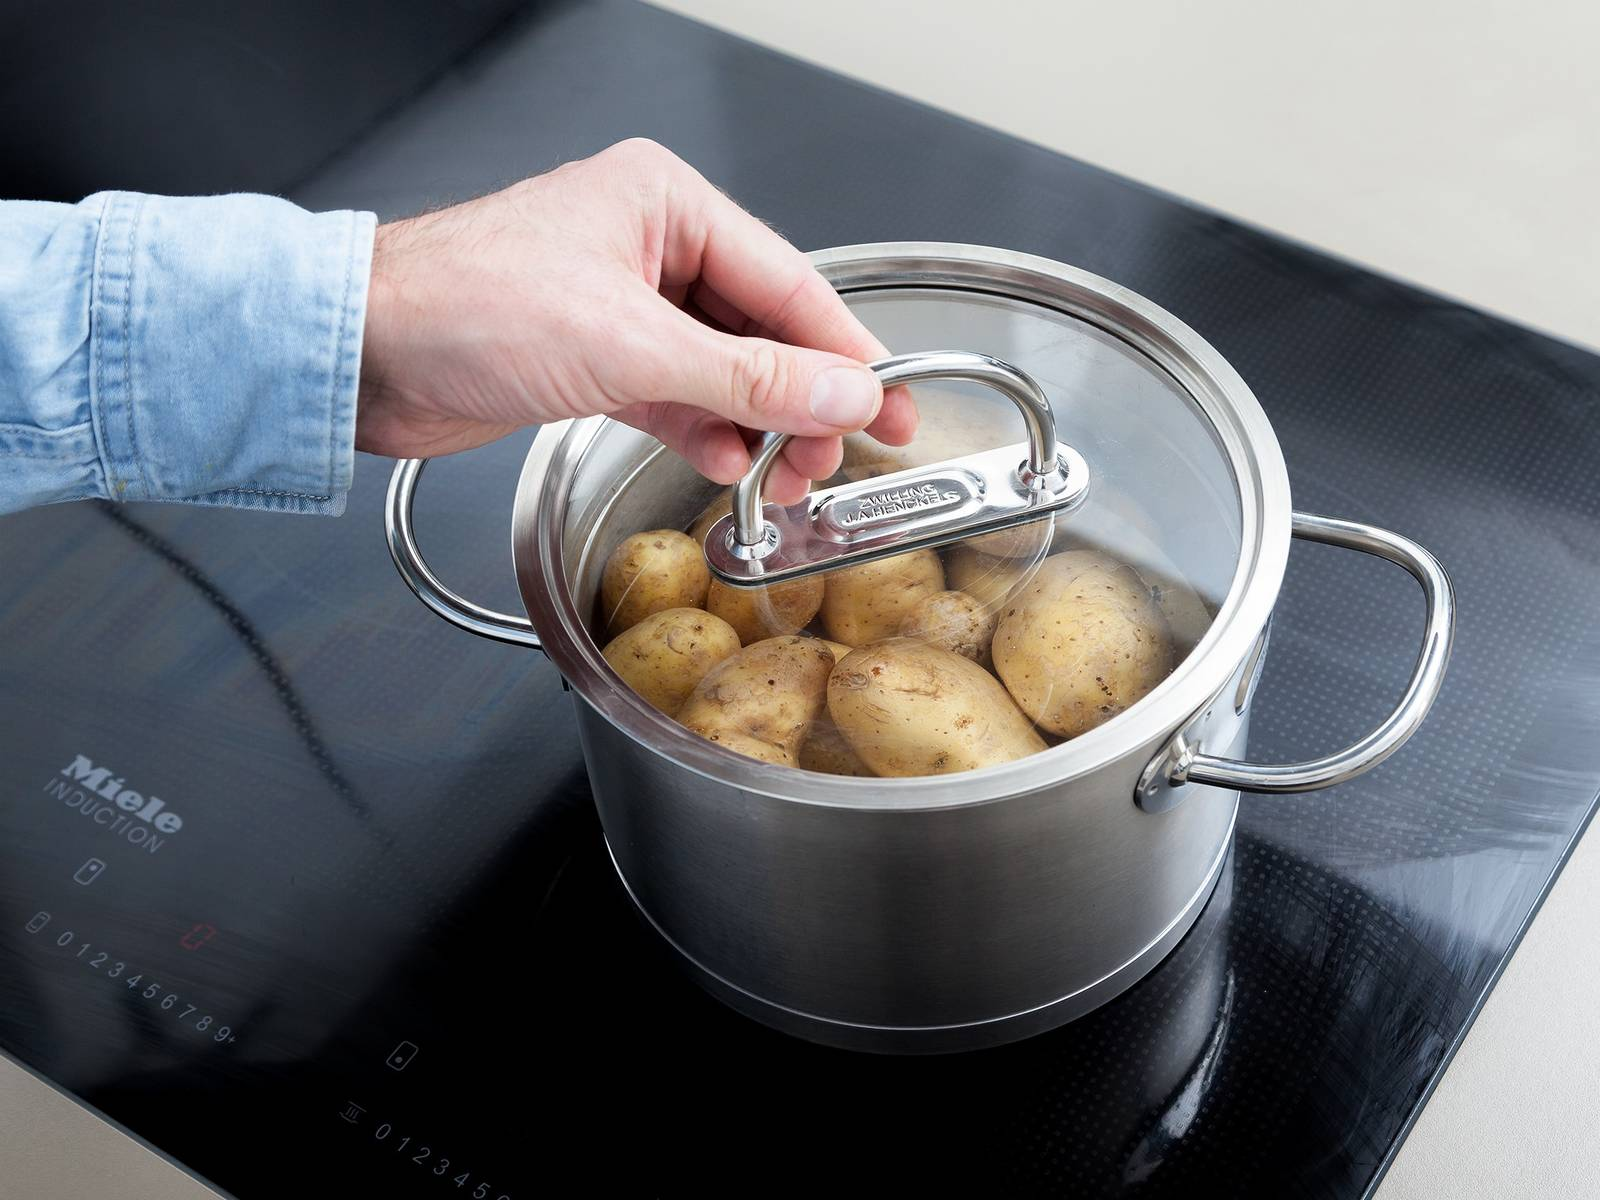 Wash potatoes thoroughly under cold water and add to a pot of water. Salt generously, and cook over medium heat for approx. 20 min. Drain and let cool.